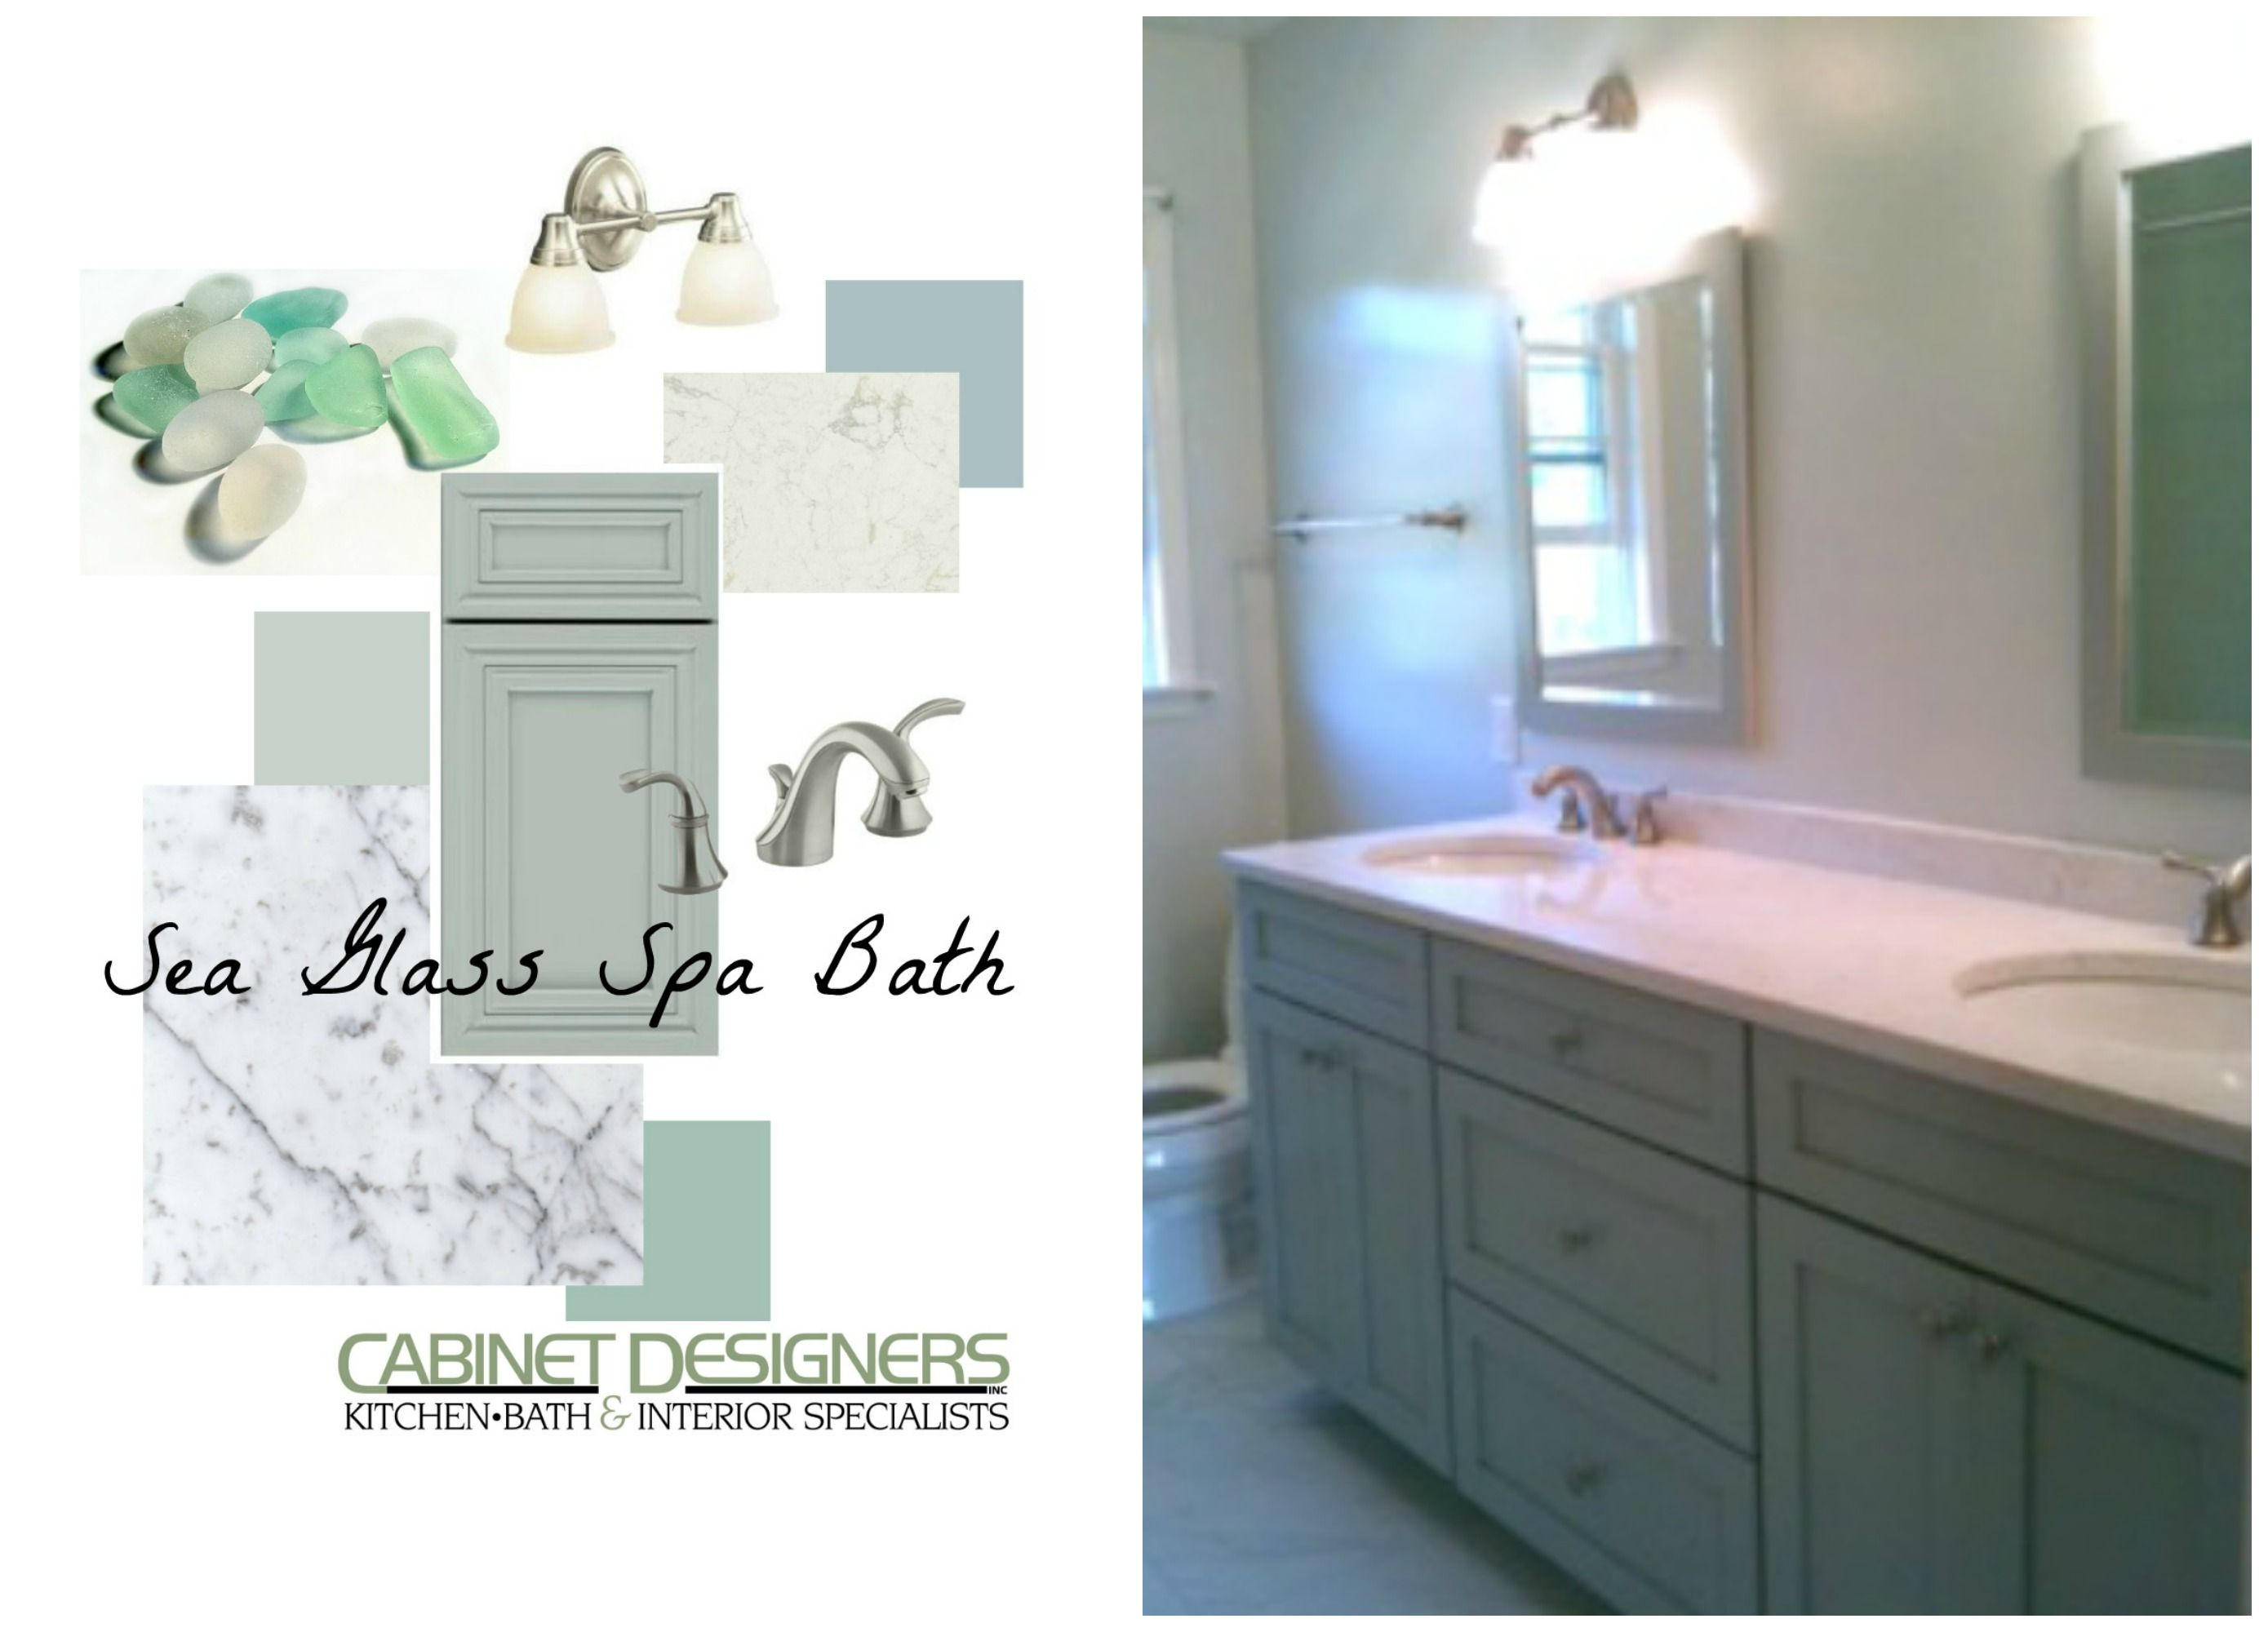 Bathroom Color Palette: Sea Glass Spa: Dynasty Rain vanity, Carrera ...